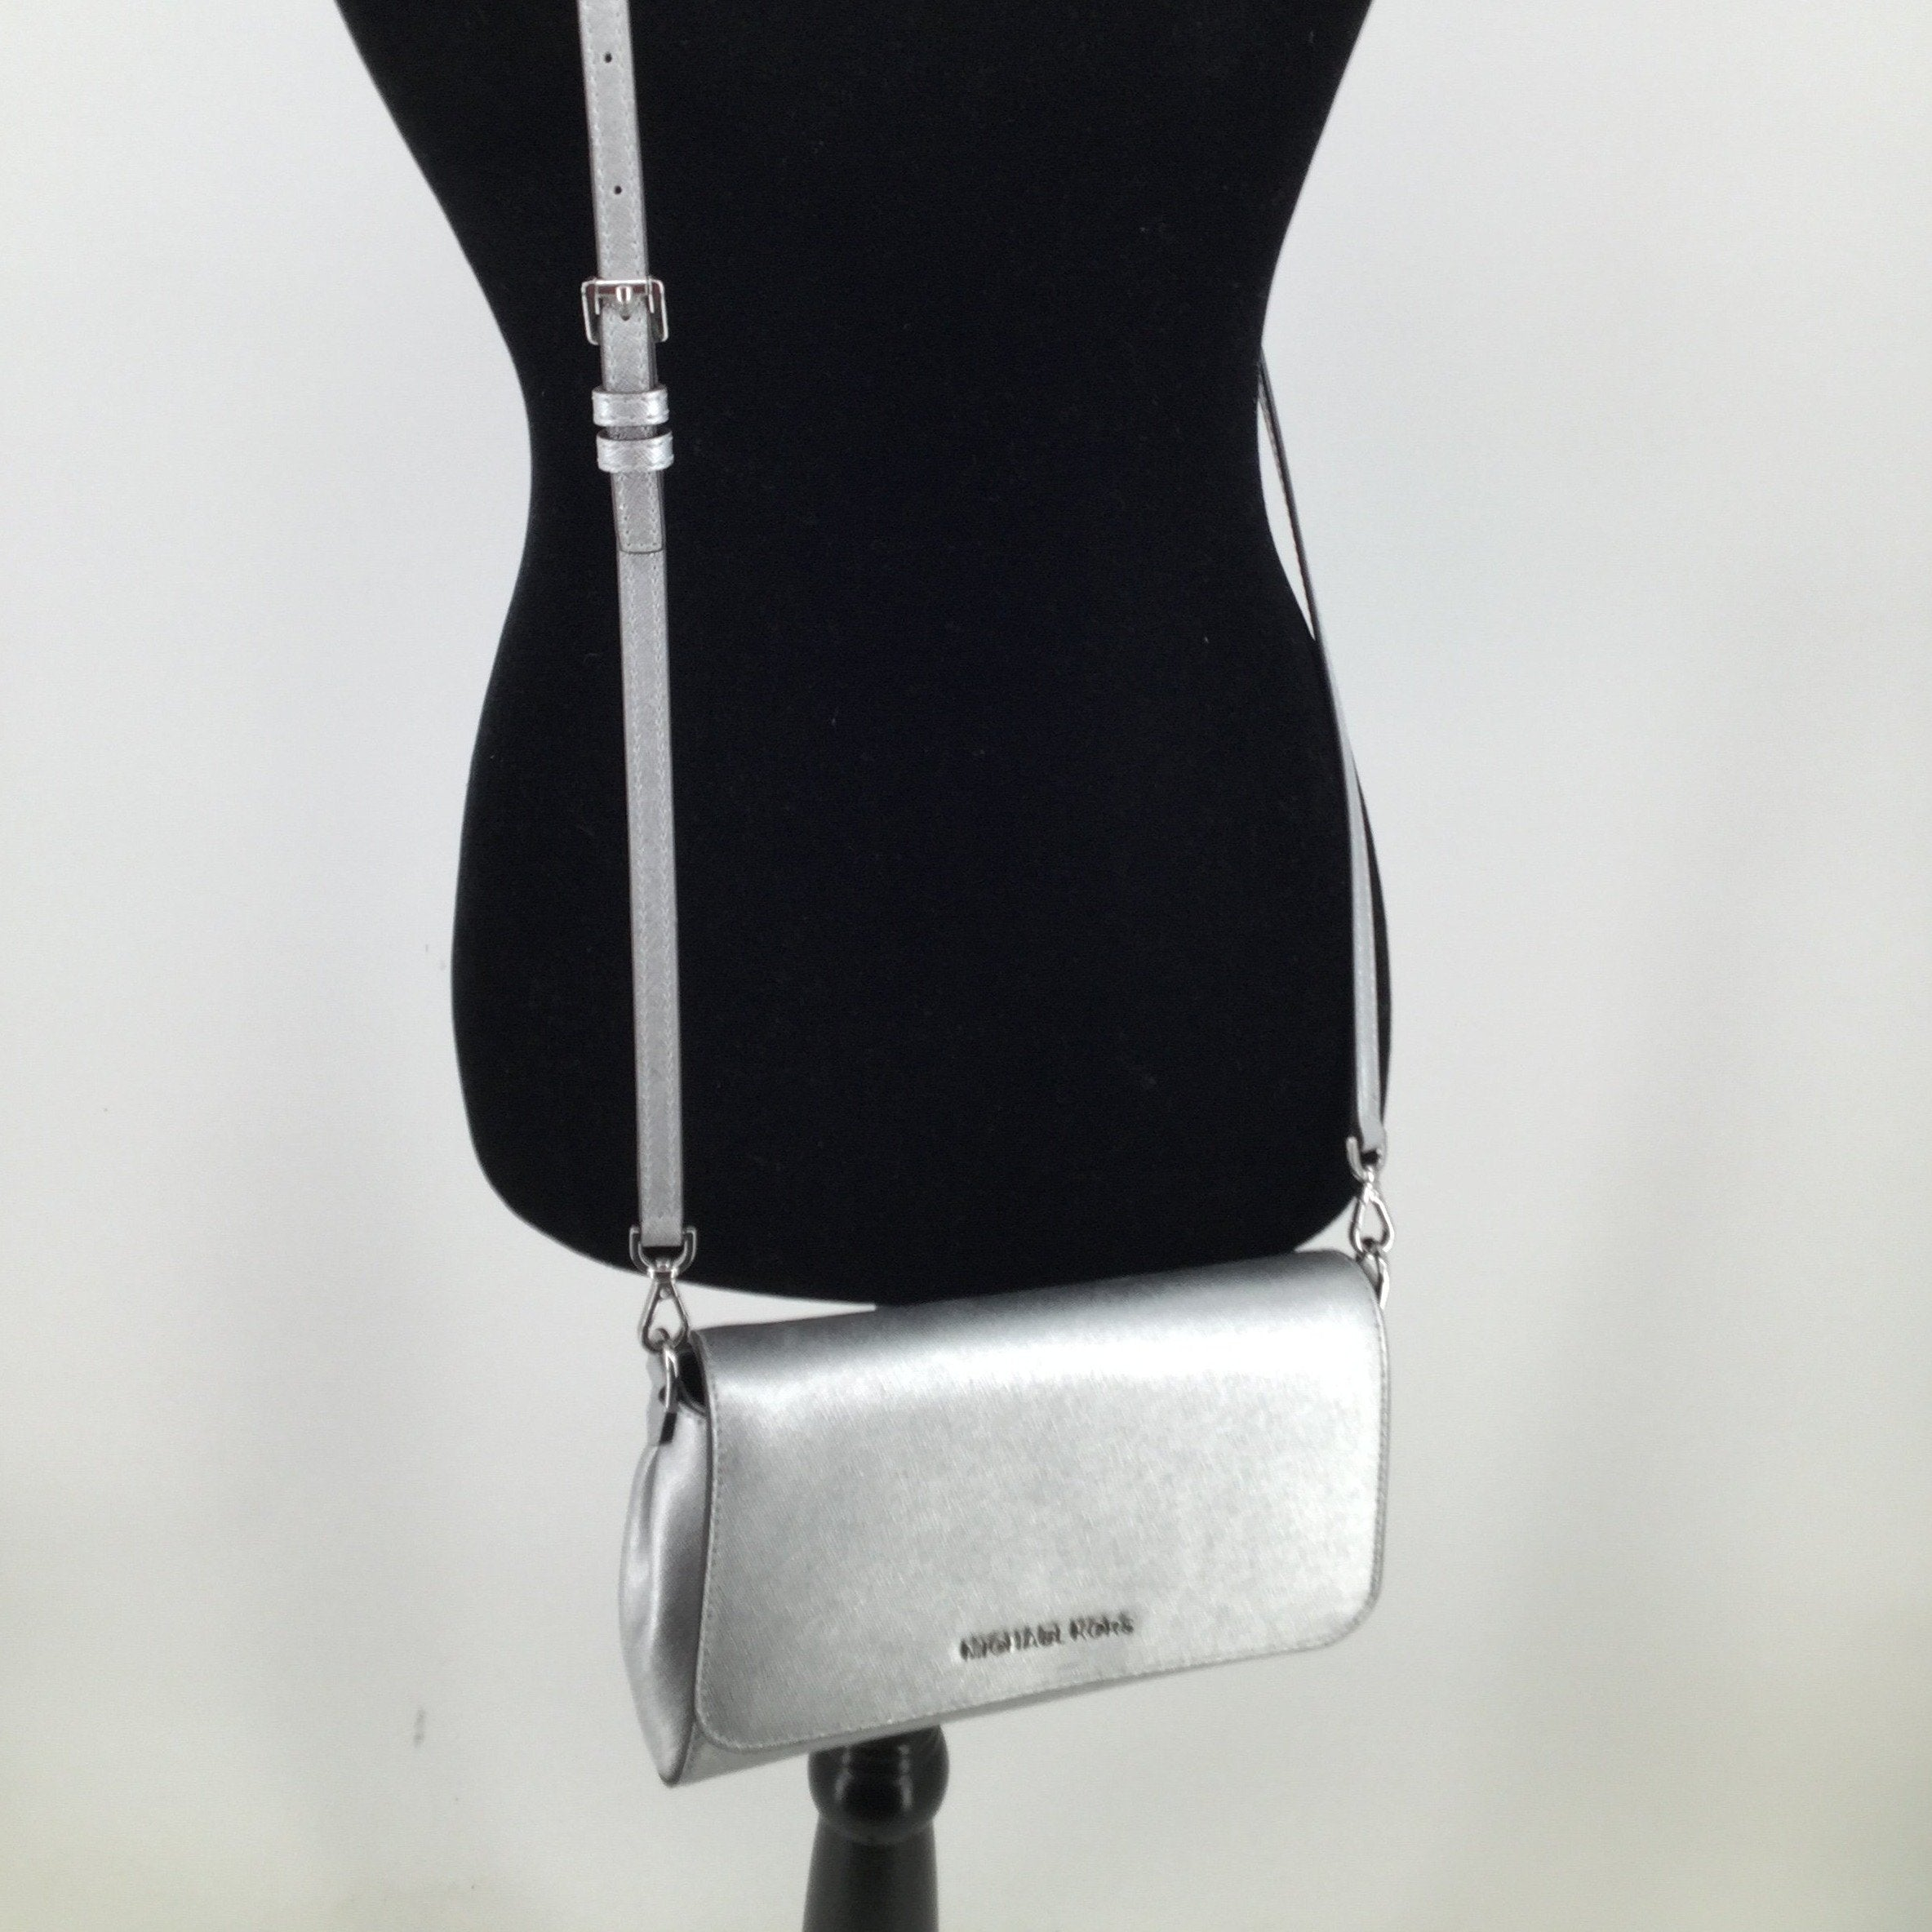 Michael Kors Handbag Designer Size:small - <P>SILVER CROSSBODY IN EXCELLENT CONDITION BY MICHAEL KORS.  SILVER HARDWARE.  OUTSIDE HIDDEN POCKET.  INTERIOR HAS ONE ZIPPERED AND ONE OPEN POCKET.</P>